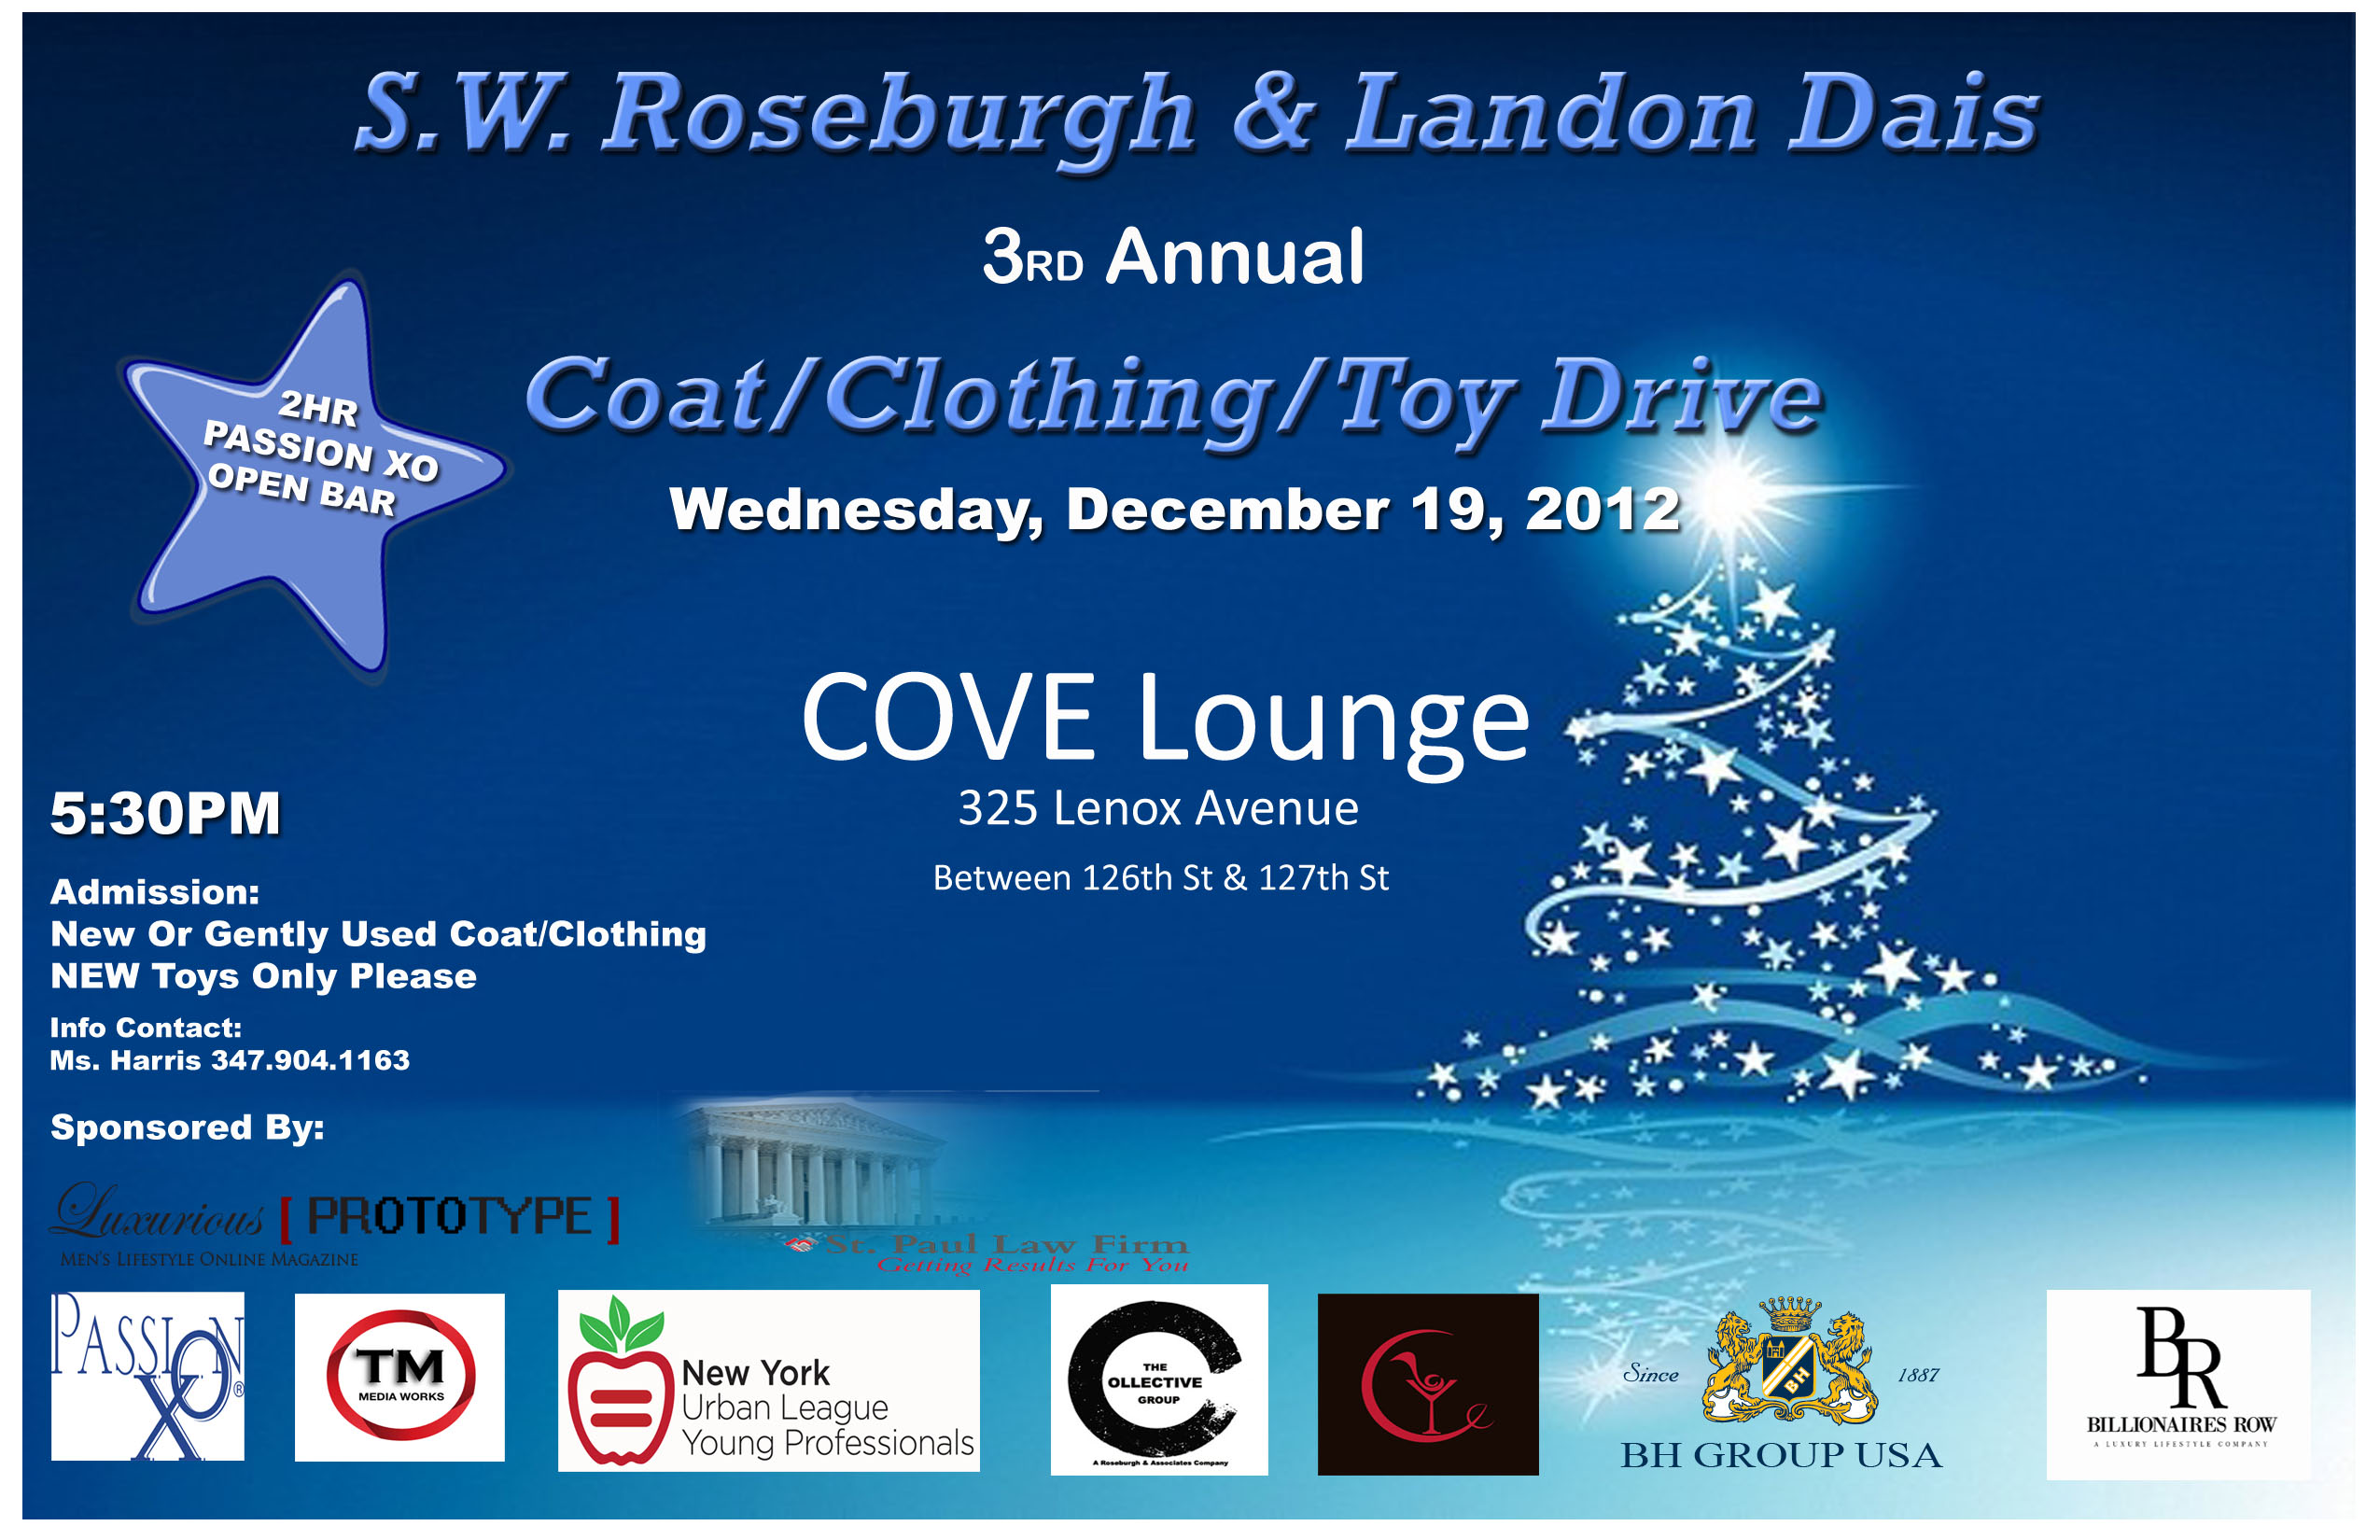 Coatdrive2012Final Invite: S.W. Roseburgh & Landon Dais 3rd Annual Coat/Clothing & Toy Drive